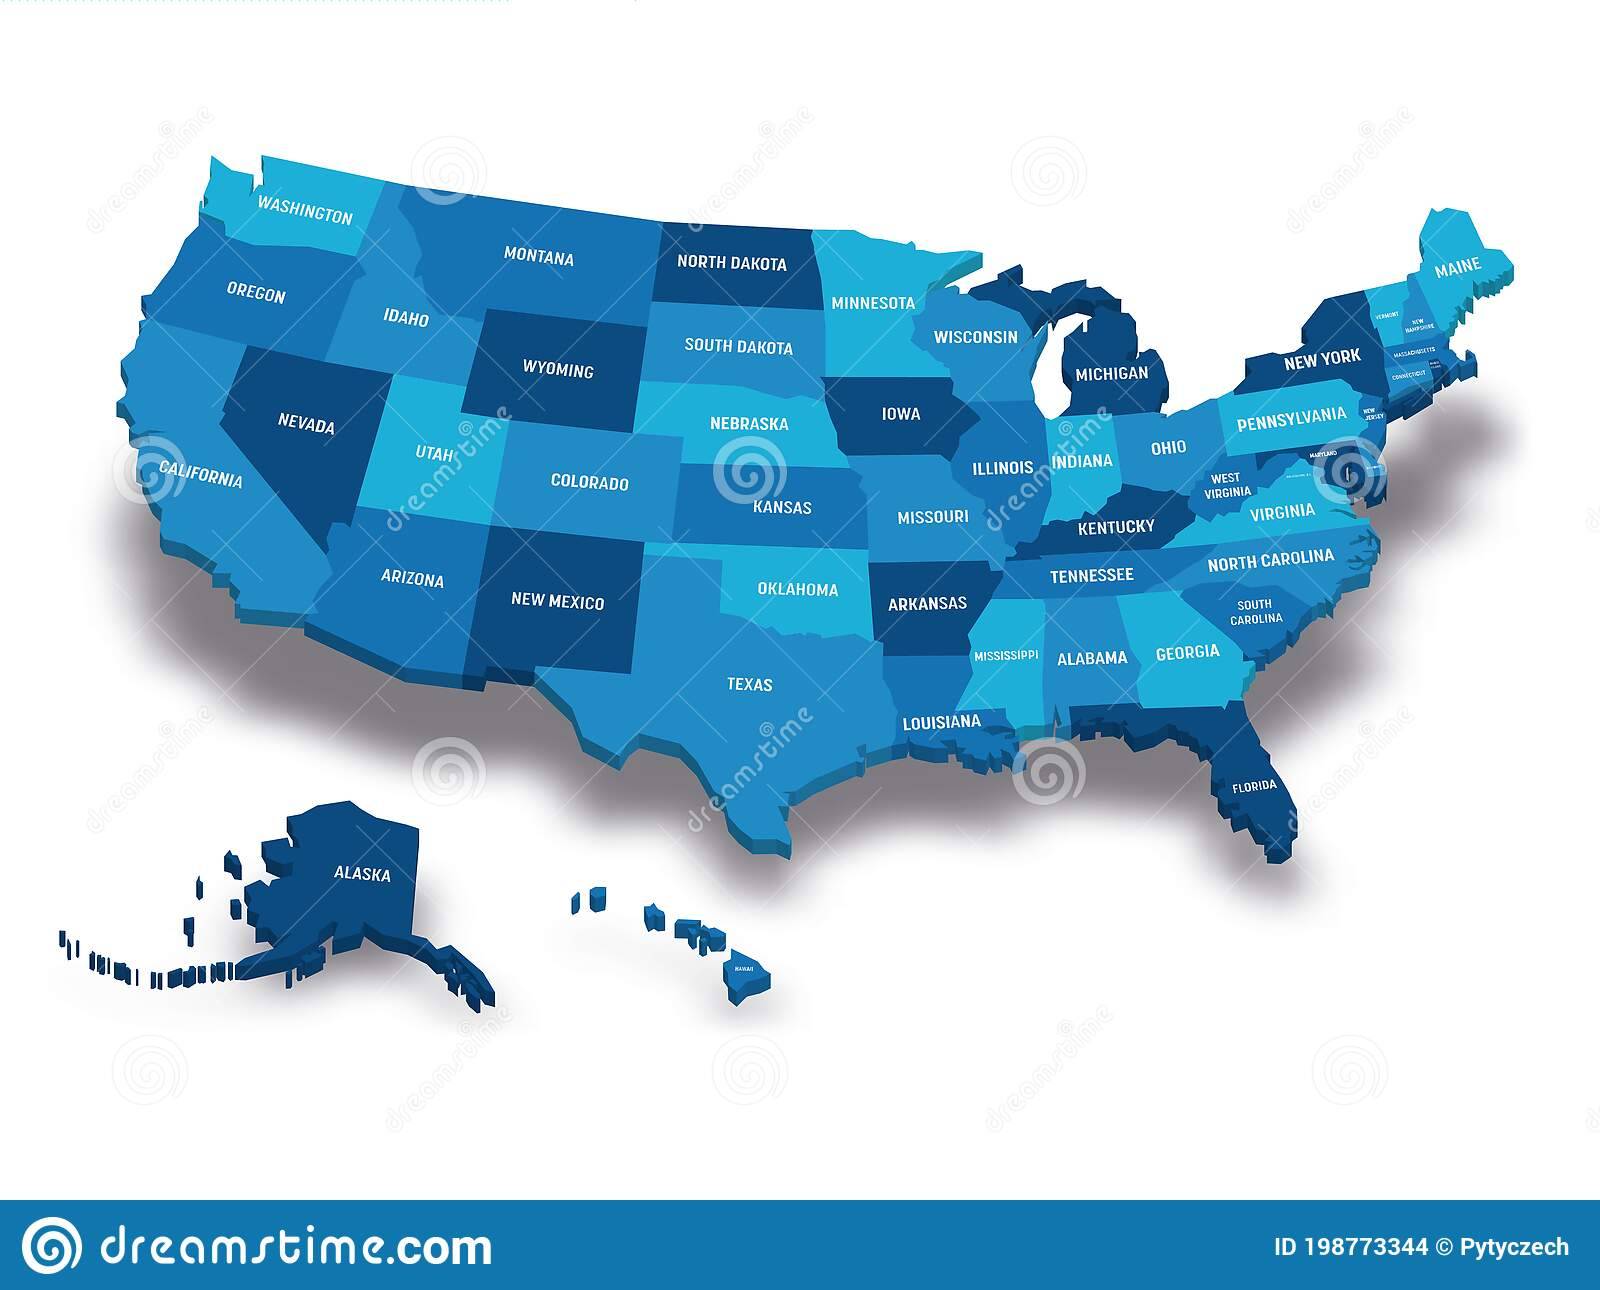 State Abbreviations Stock Illustrations 51 State Abbreviations Stock Illustrations Vectors Clipart Dreamstime